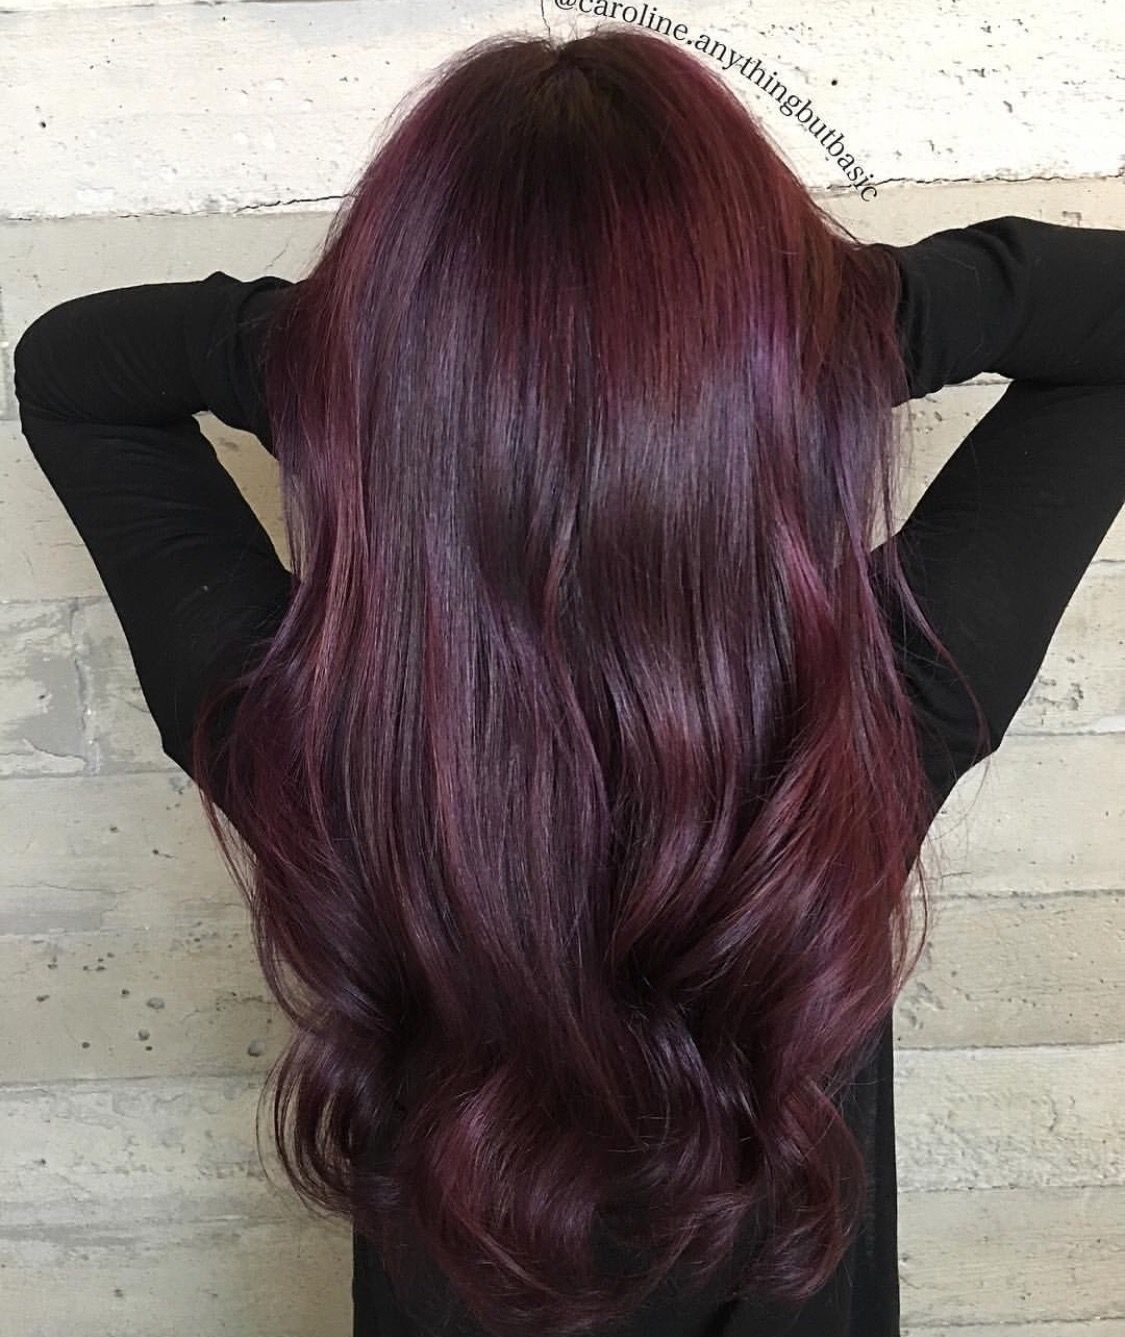 Pin by jamie on hair pinterest hair coloring hair style and red